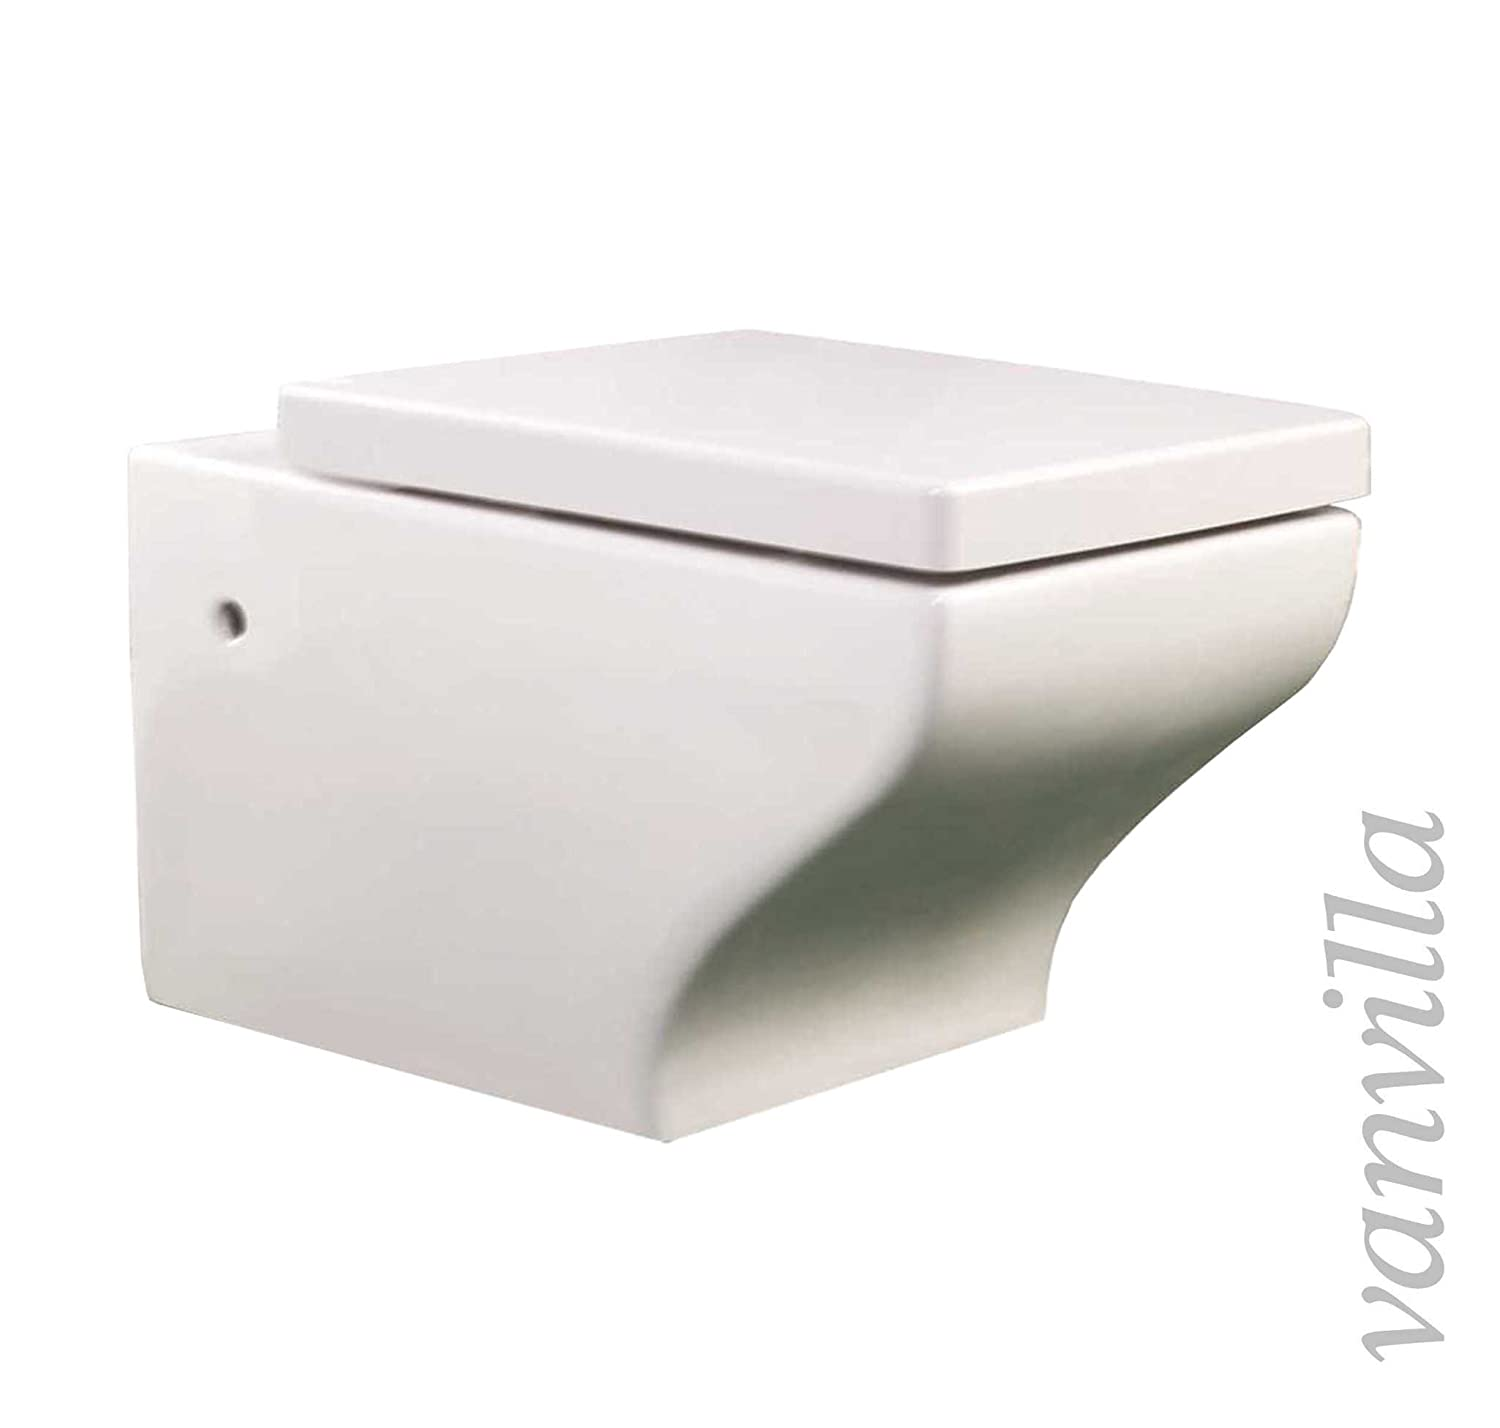 vanvilla Design Hä nge-WC 888 Tiefspü ler Toilette Soft-Close, Wand WC